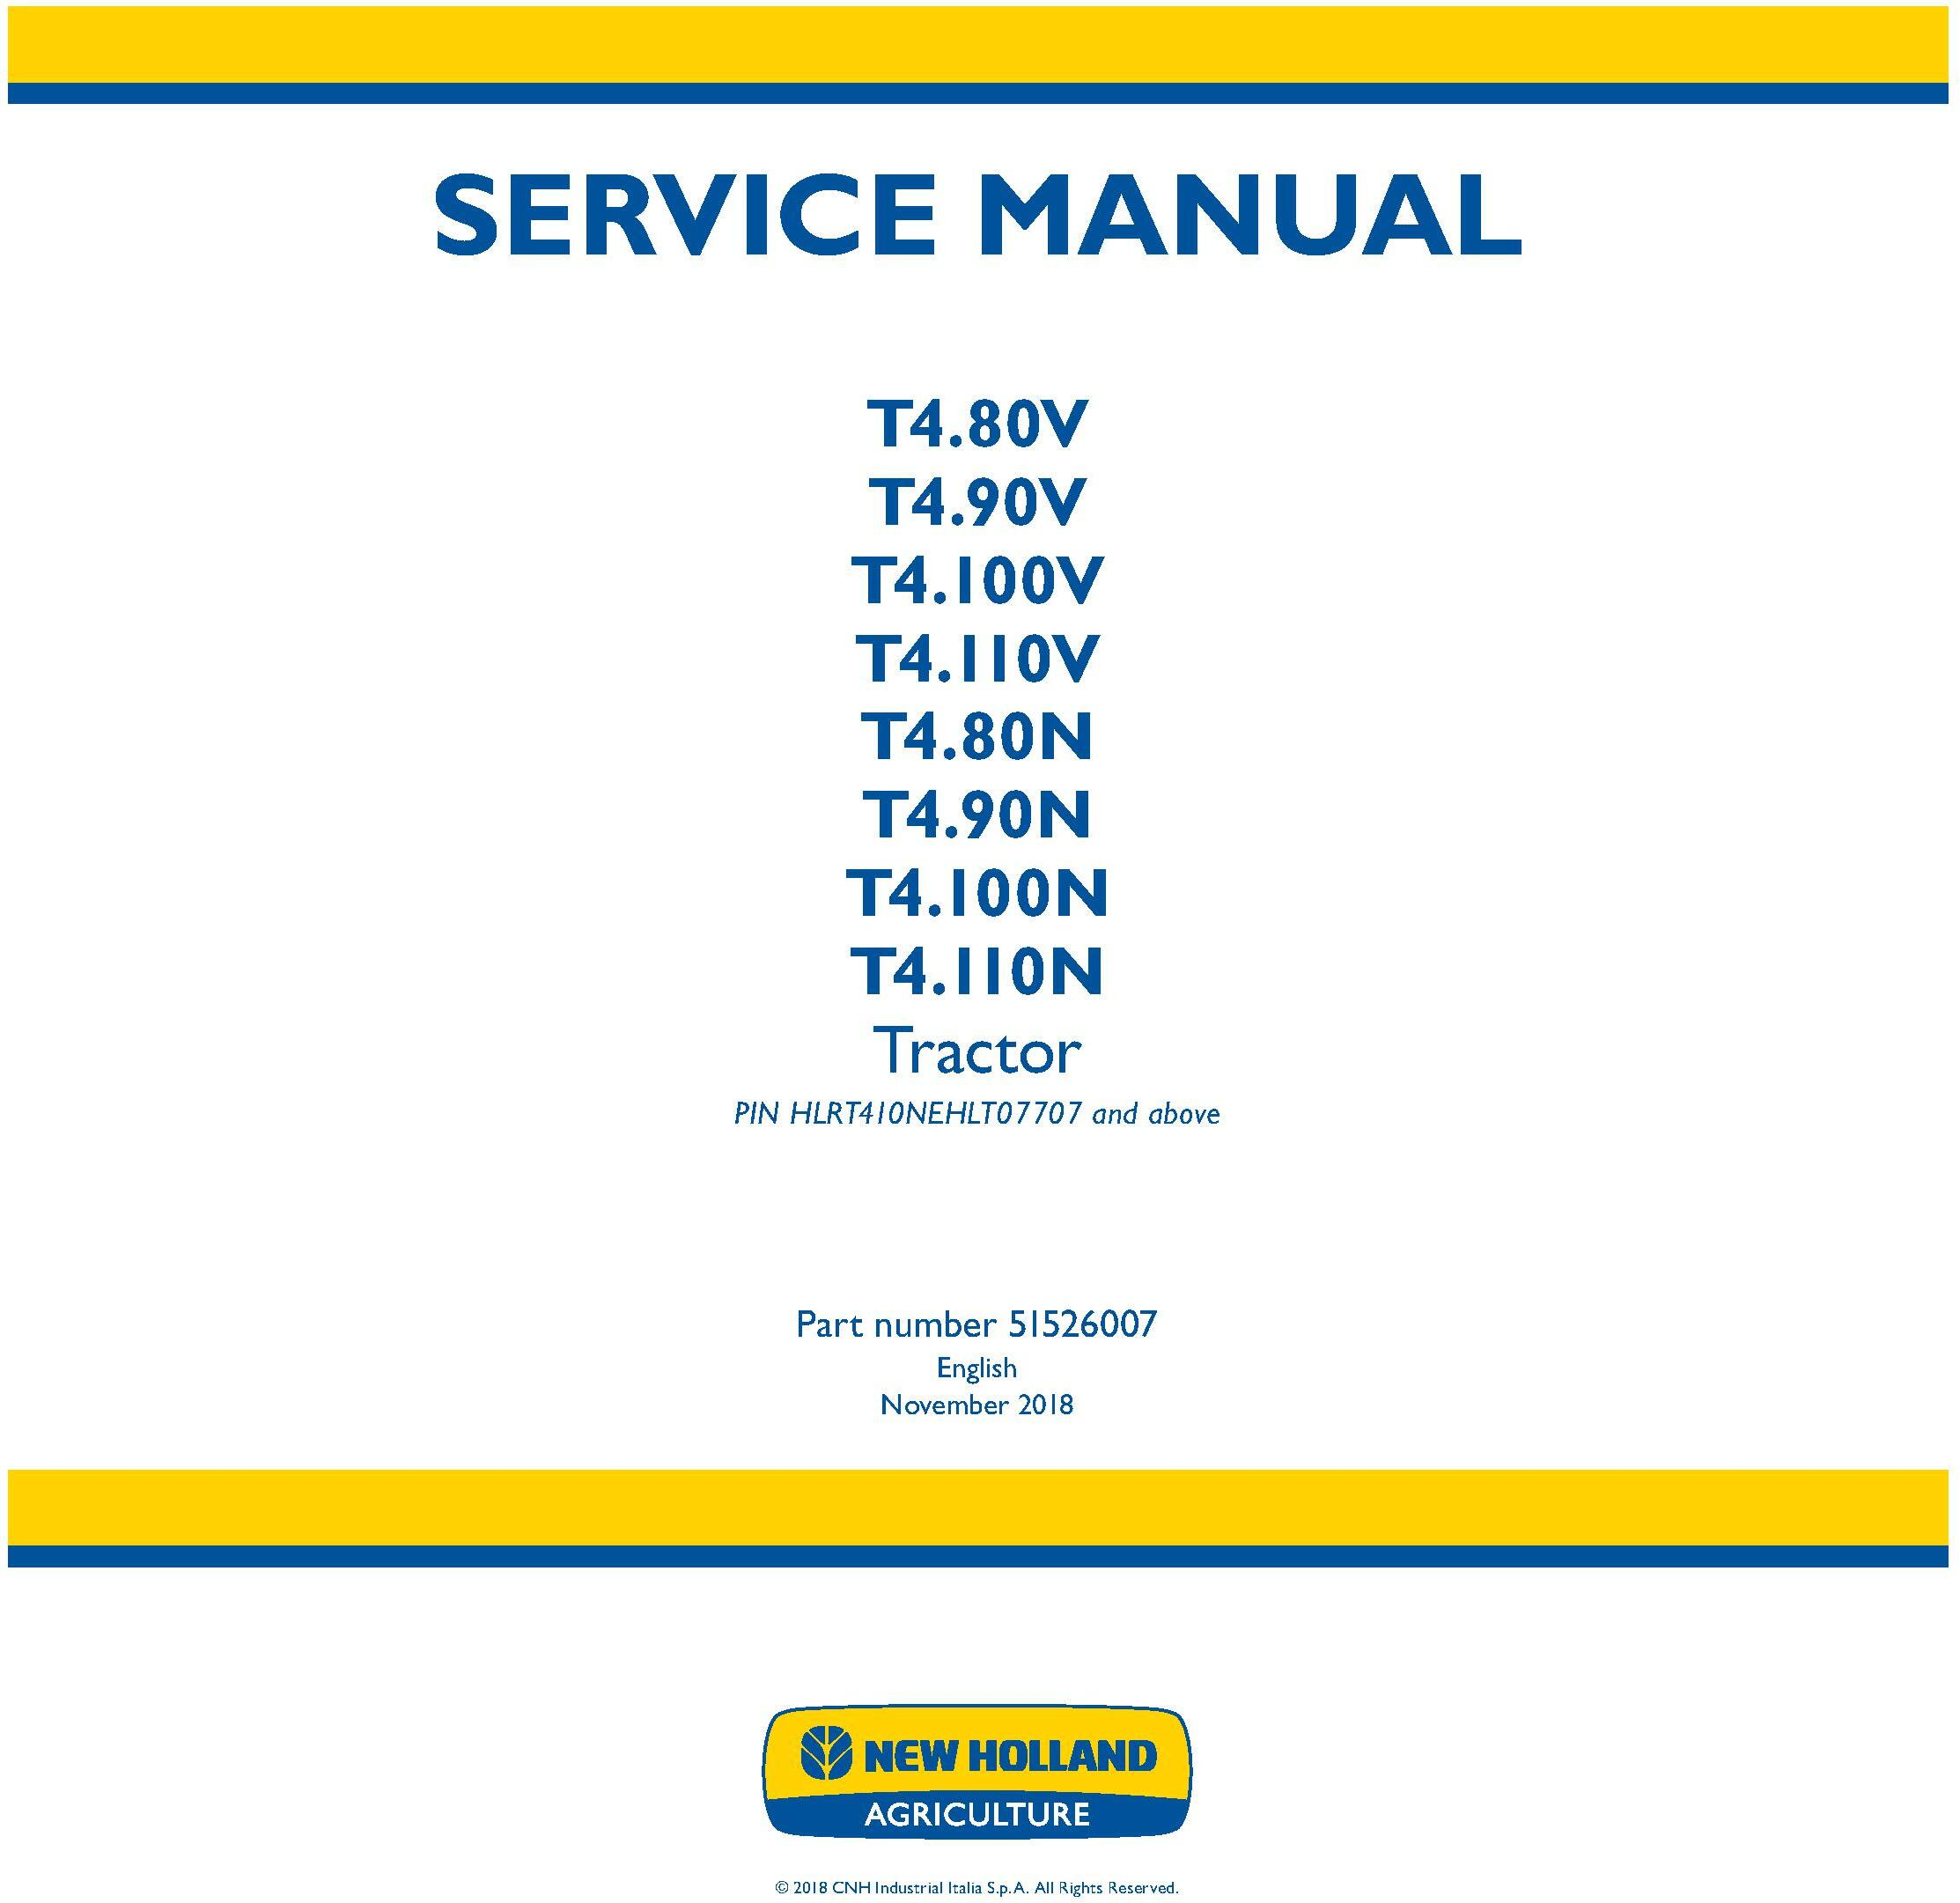 New Holland T4.80V/N, T4.90V/N, T4.100V/N, T4.110V/N Tractor Tier 4A and StageIIIB Service Manual - 19526